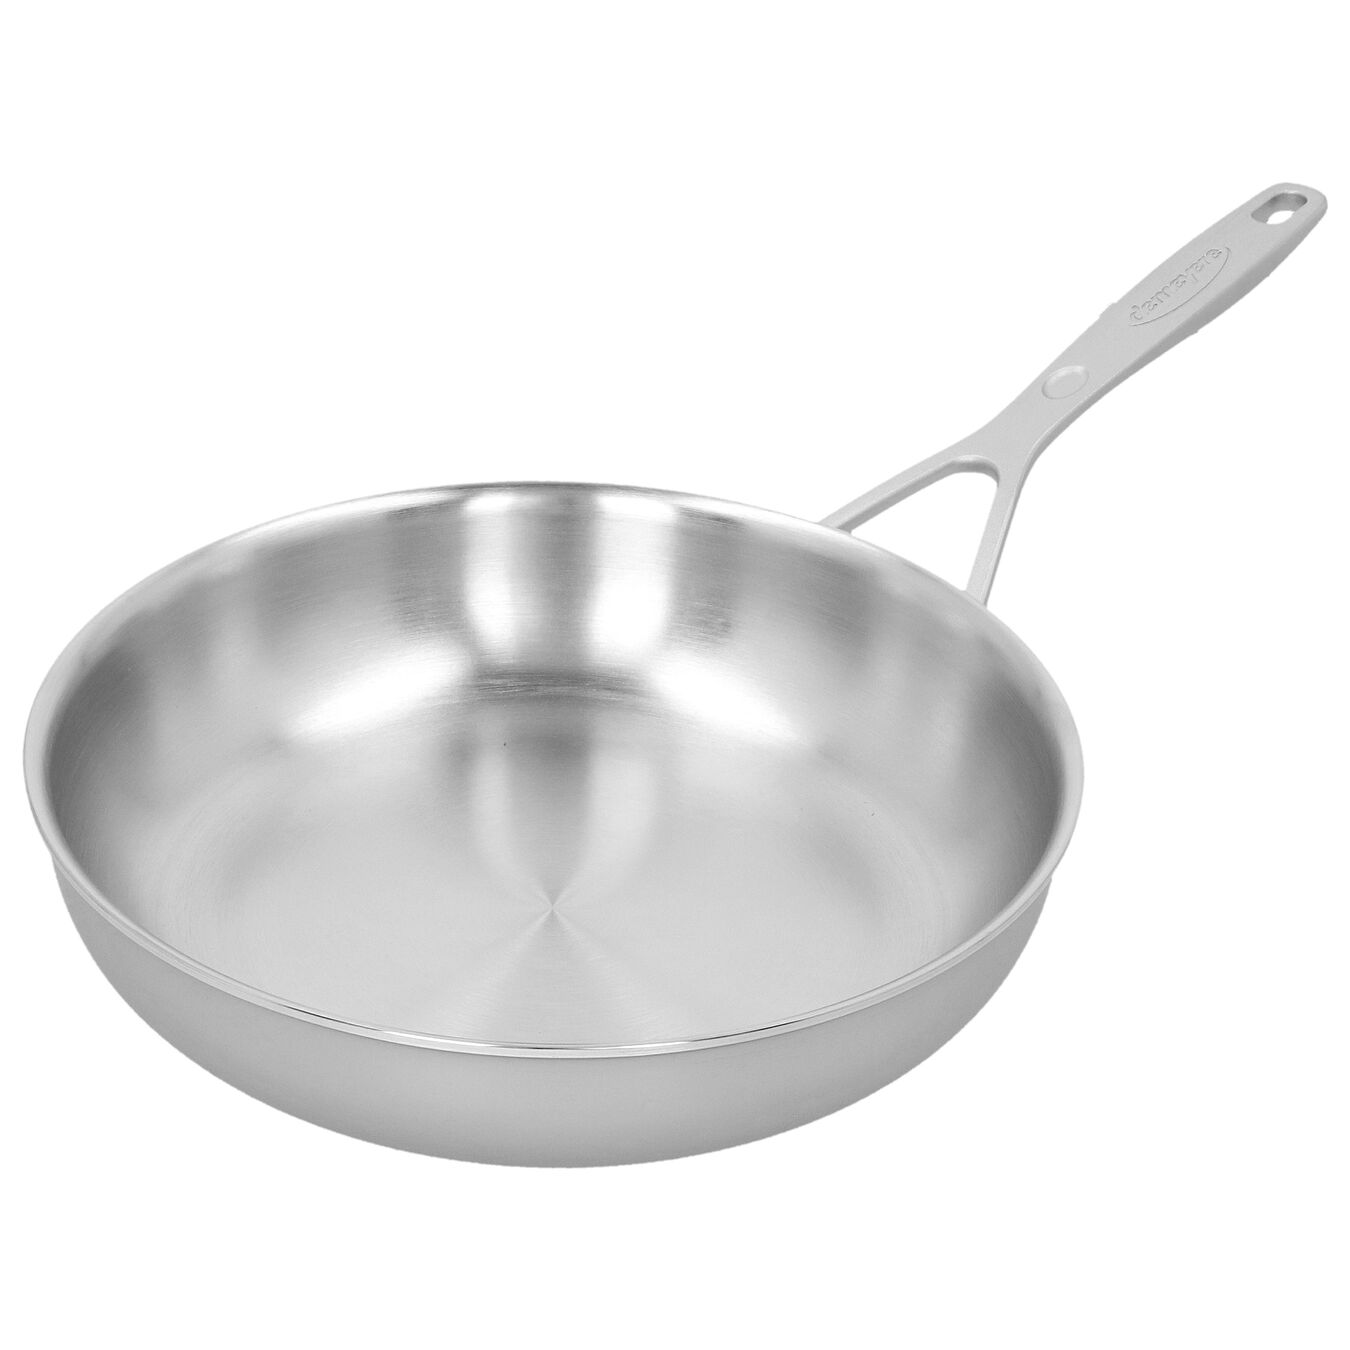 24 cm / 9.5 inch Frying pan,,large 2